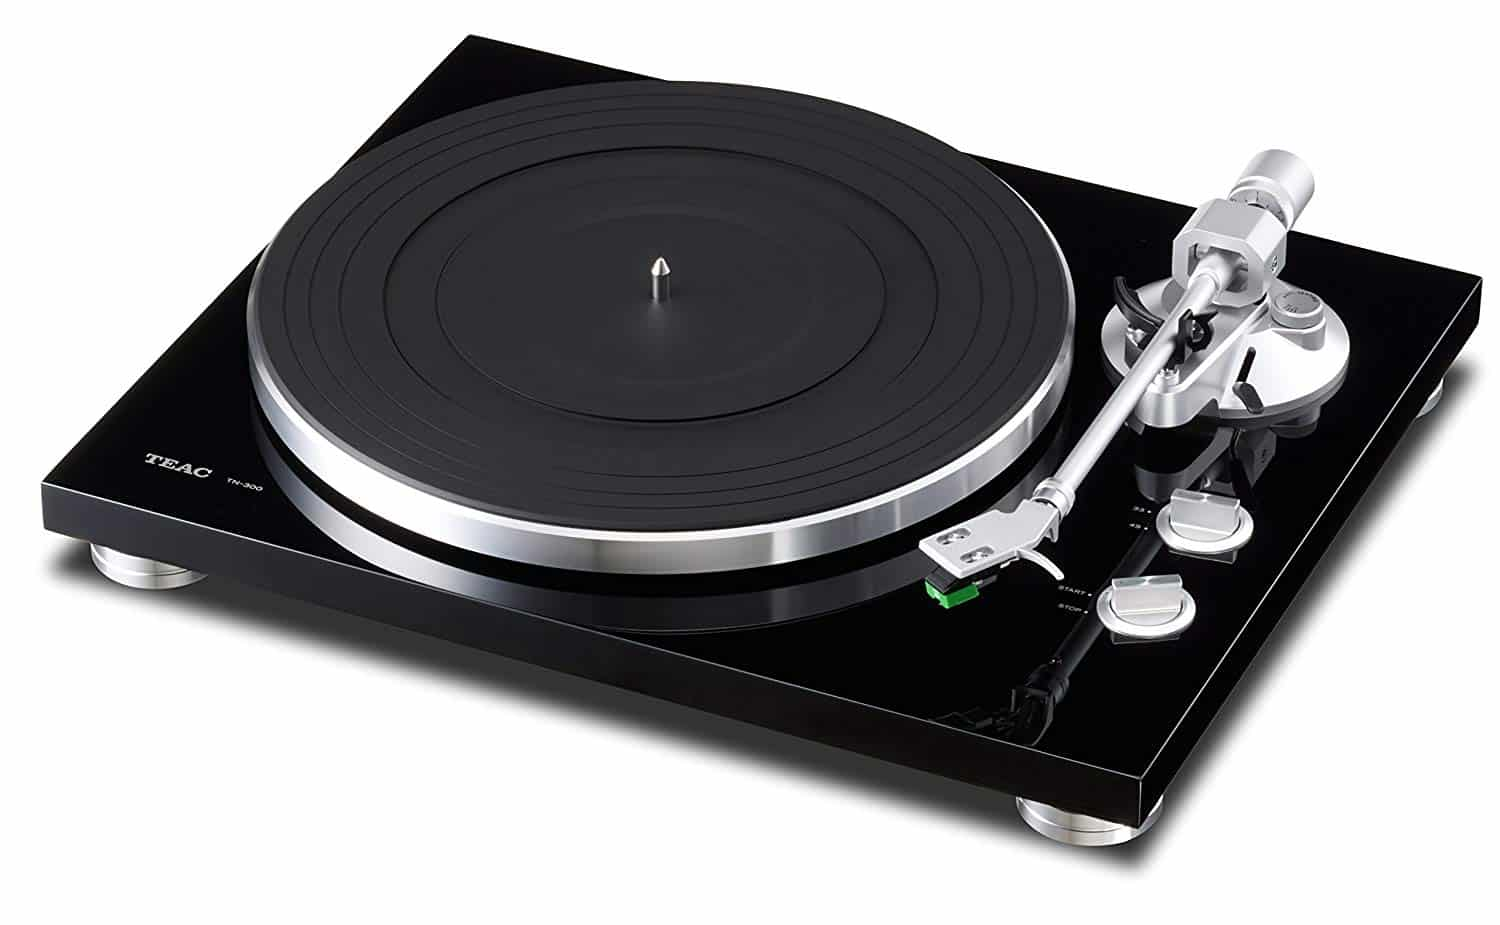 TEAC TN-300 Analog Turntable with Built-in Phono